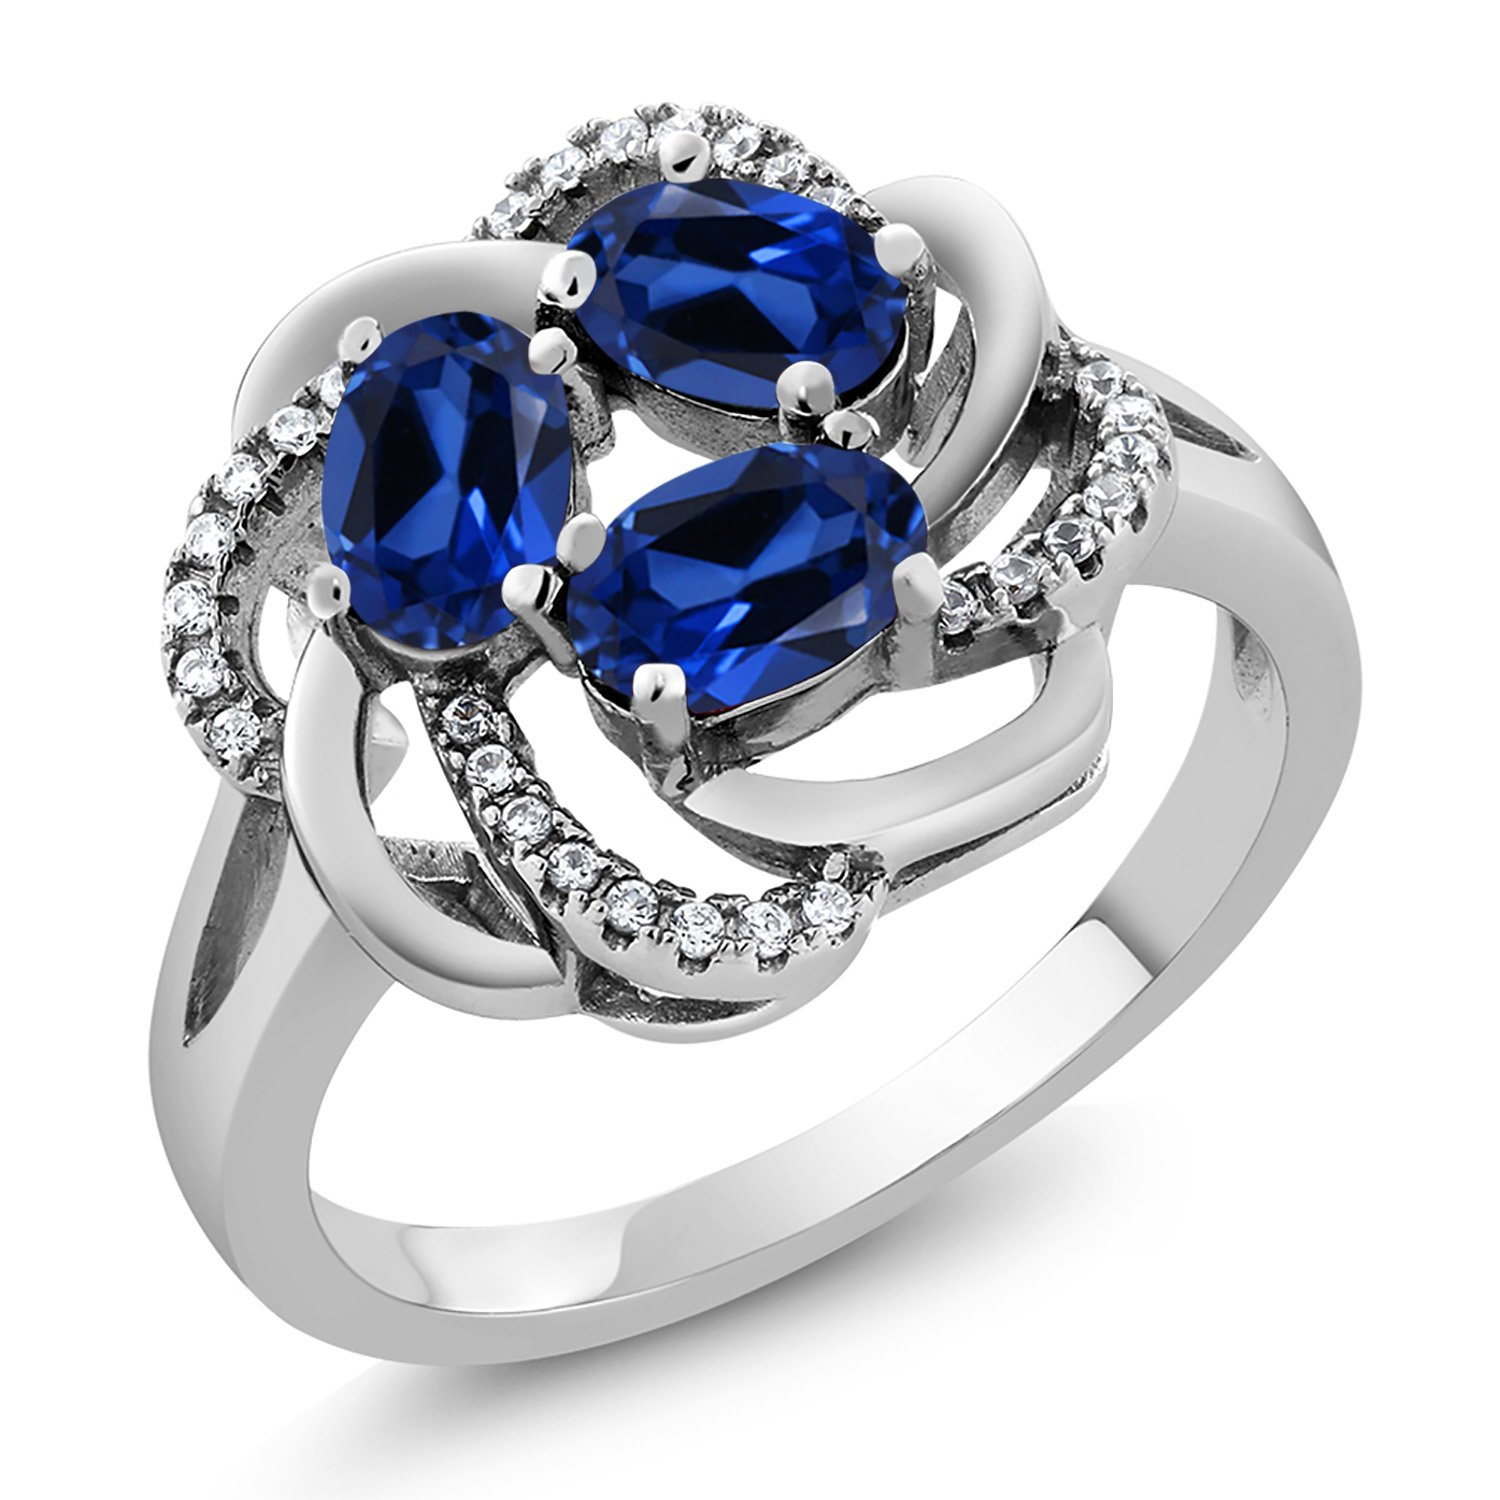 Gem Stone King 925 Sterling Silver Blue Created Sapphire 3-Stone Women's Ring 1.87 Ctw Oval (Available 5,6,7,8,9)